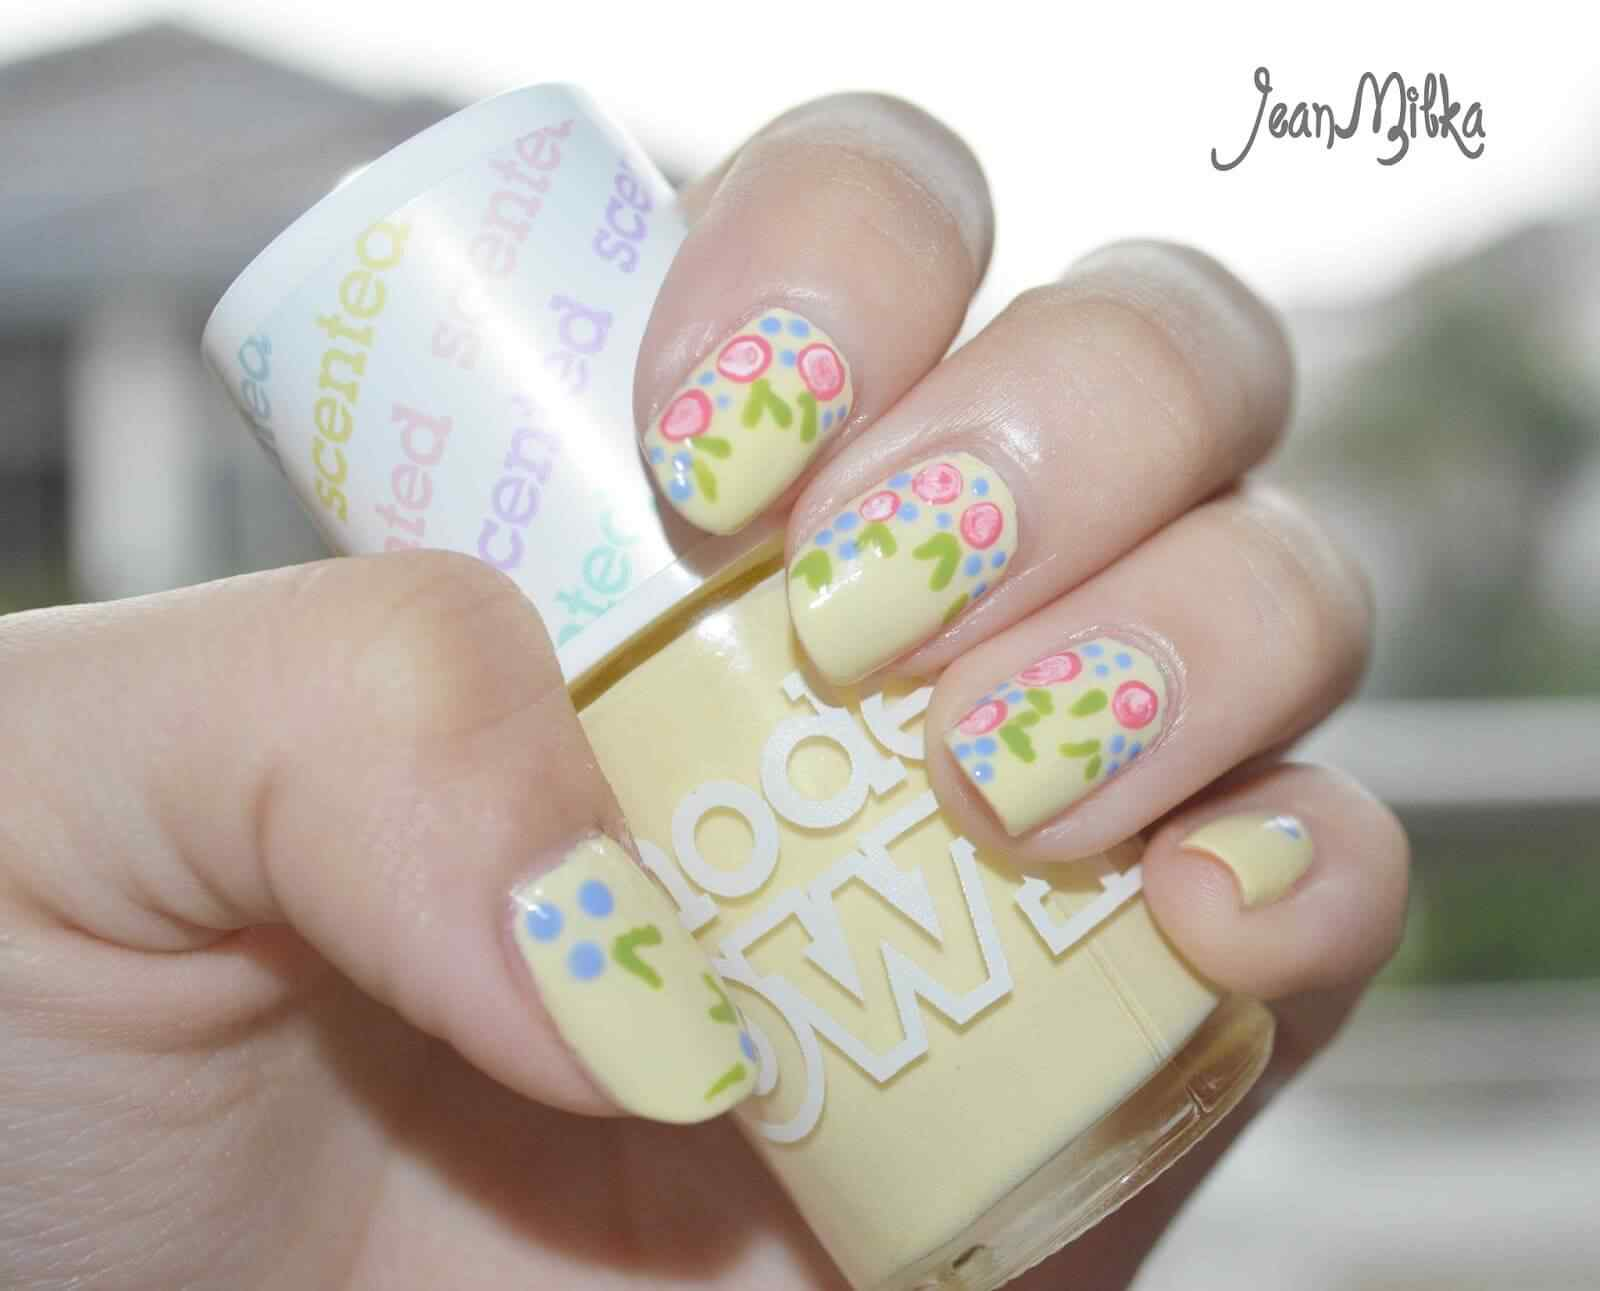 Fuente: http://www.jeanmilka.com/2014/03/pink-manicure-spring-in-pastel-nail-art.html#more